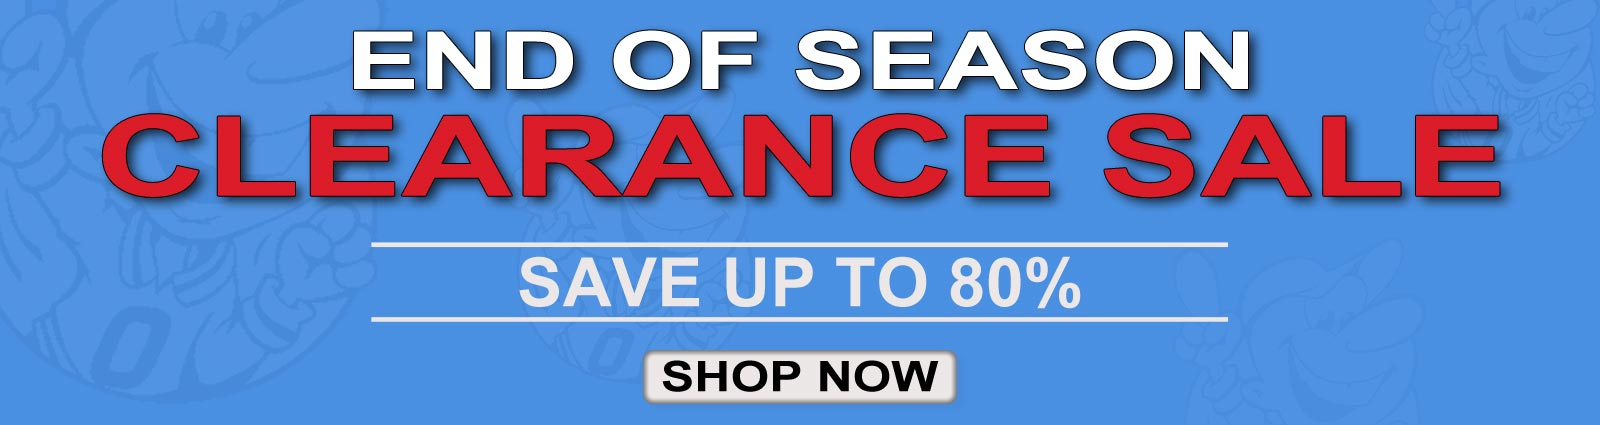 Shop Our End Of Season Clearance Event and Save Up To 80% Off.